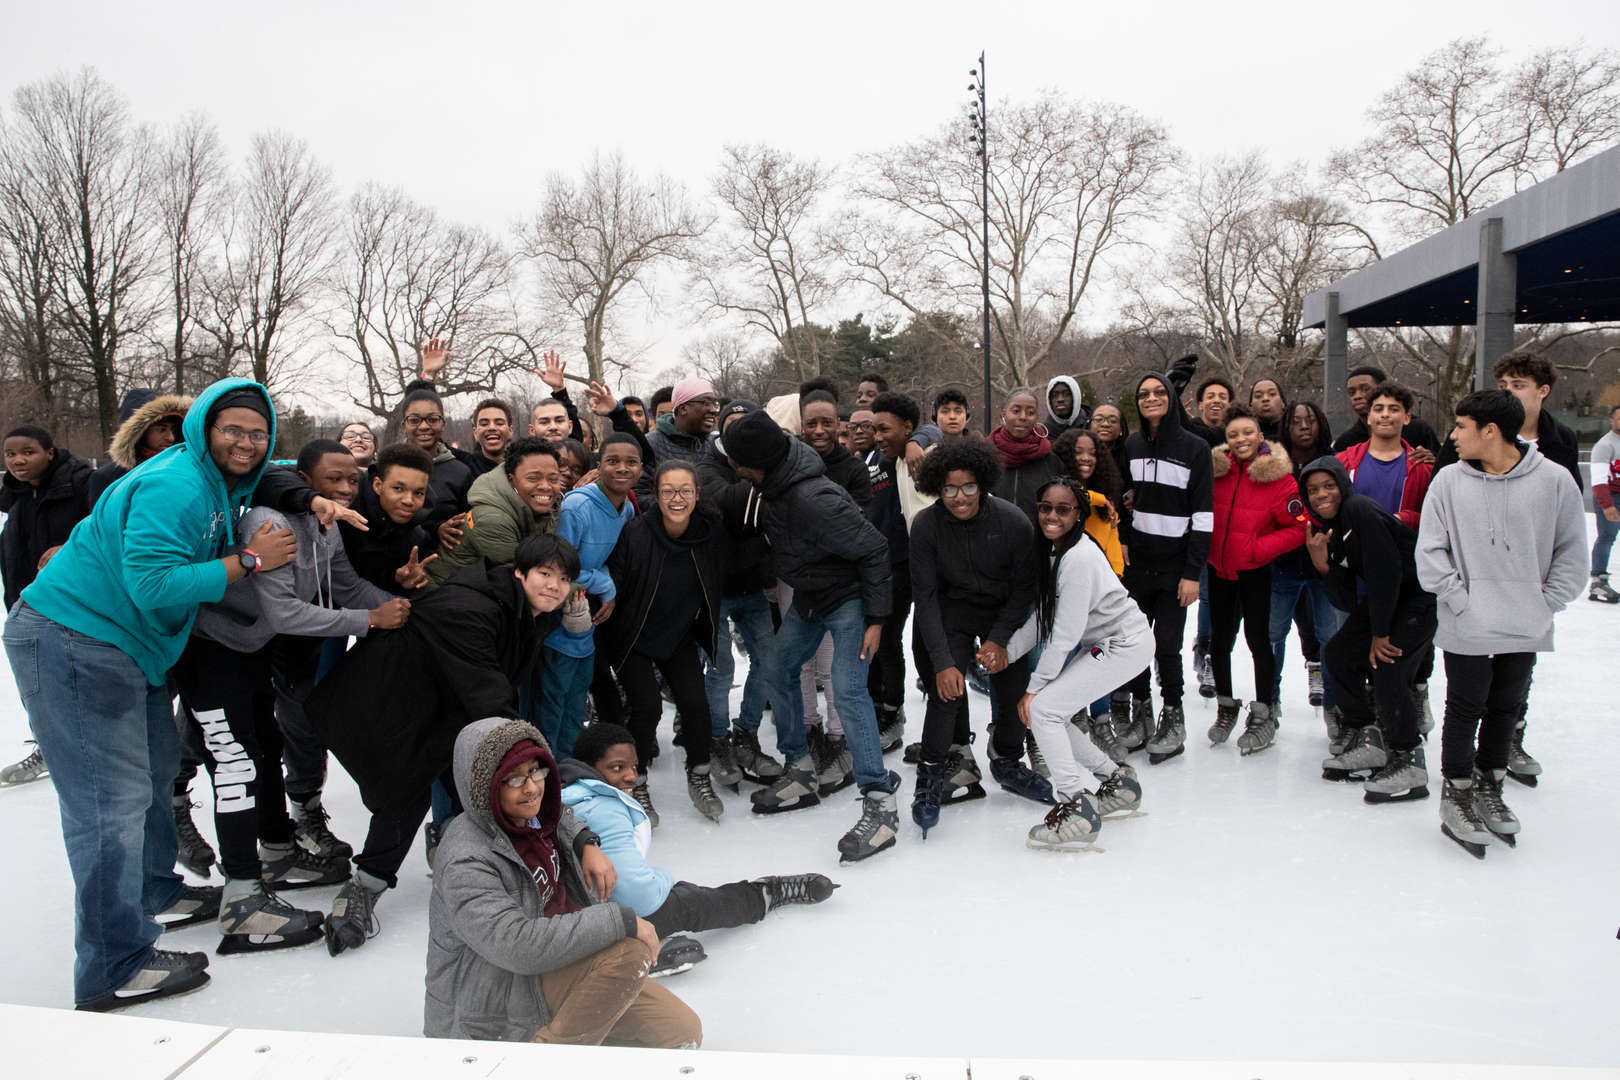 Students gathering for a group photo at the ice skating rink